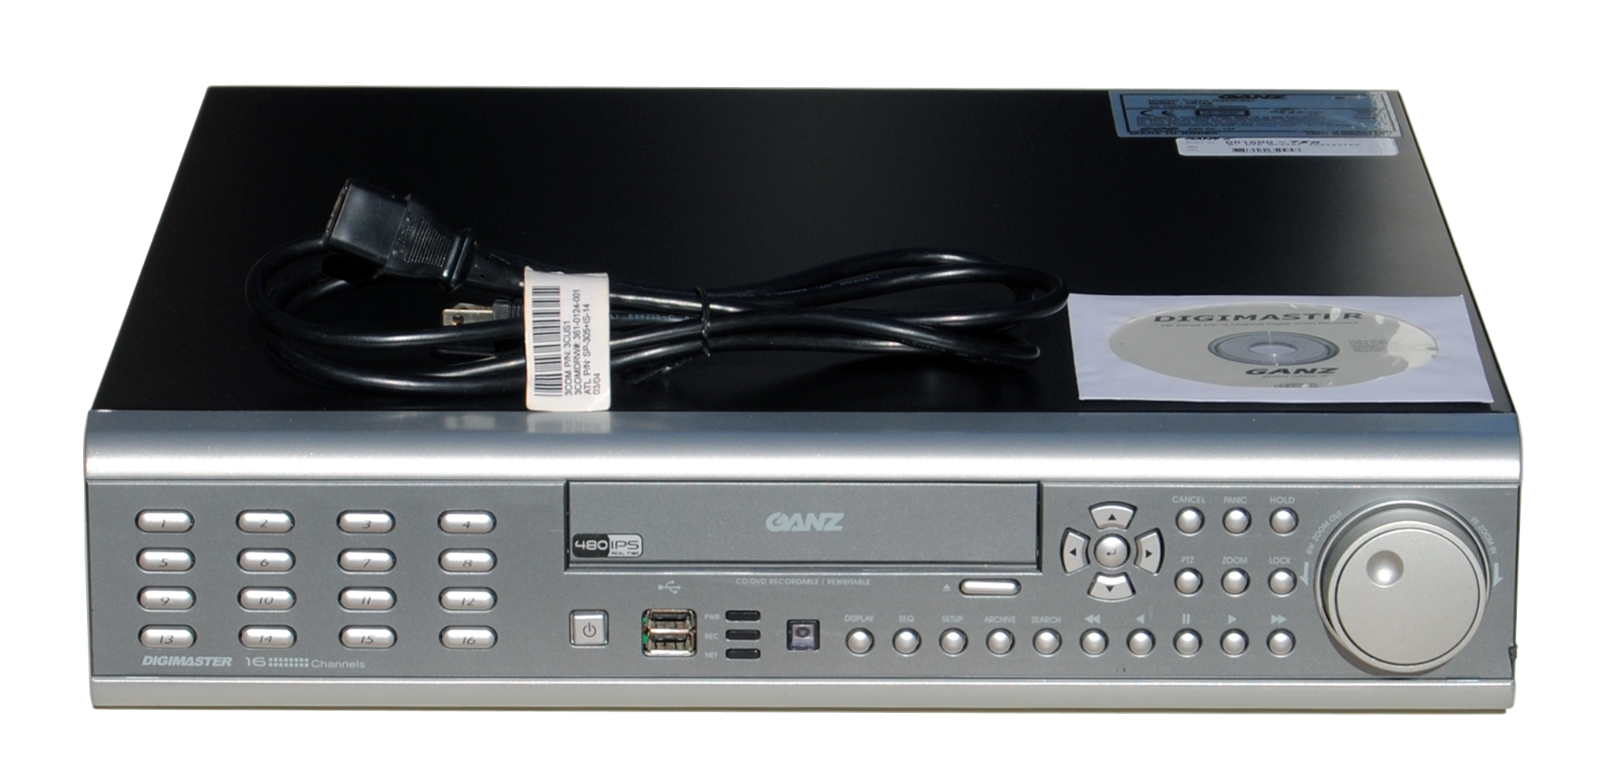 ganz digimaster dr16nd 16 channel cctv and 50 similar items rh bonanza com Ganz DVR Tech Support Ganz DVR Tech Support